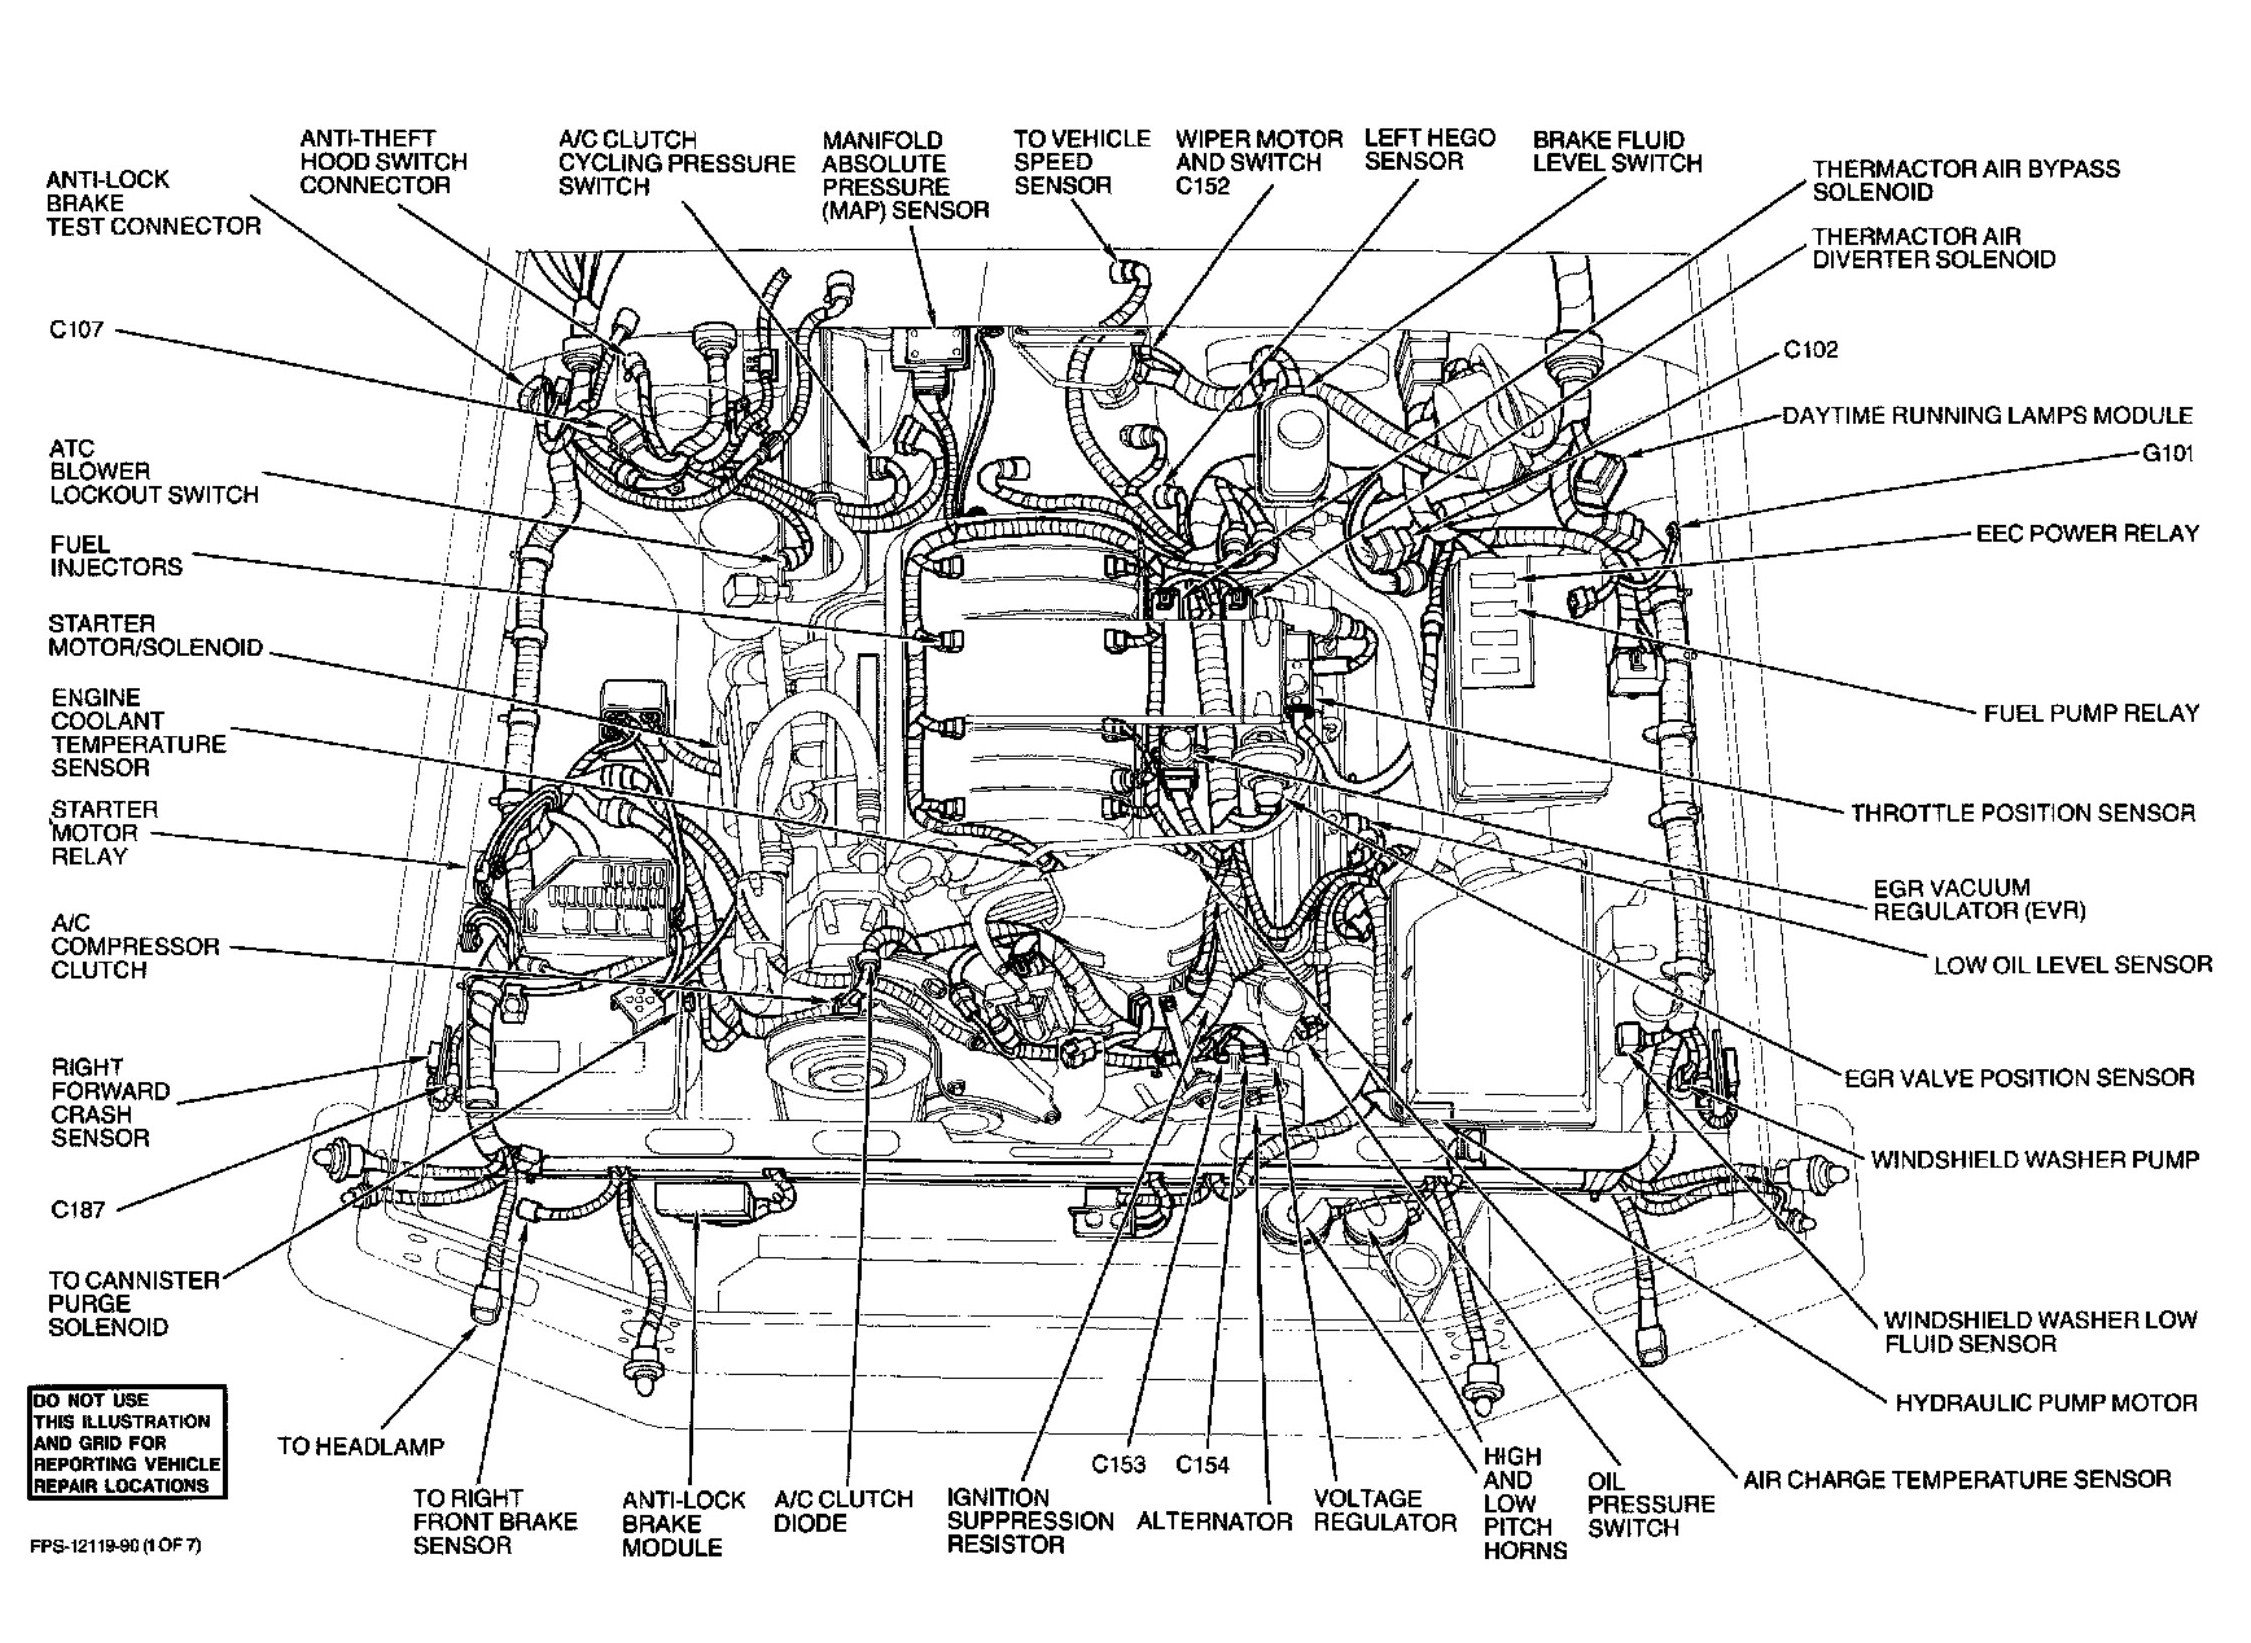 Ford Crown Victoria Engine Diagram | Wiring Library